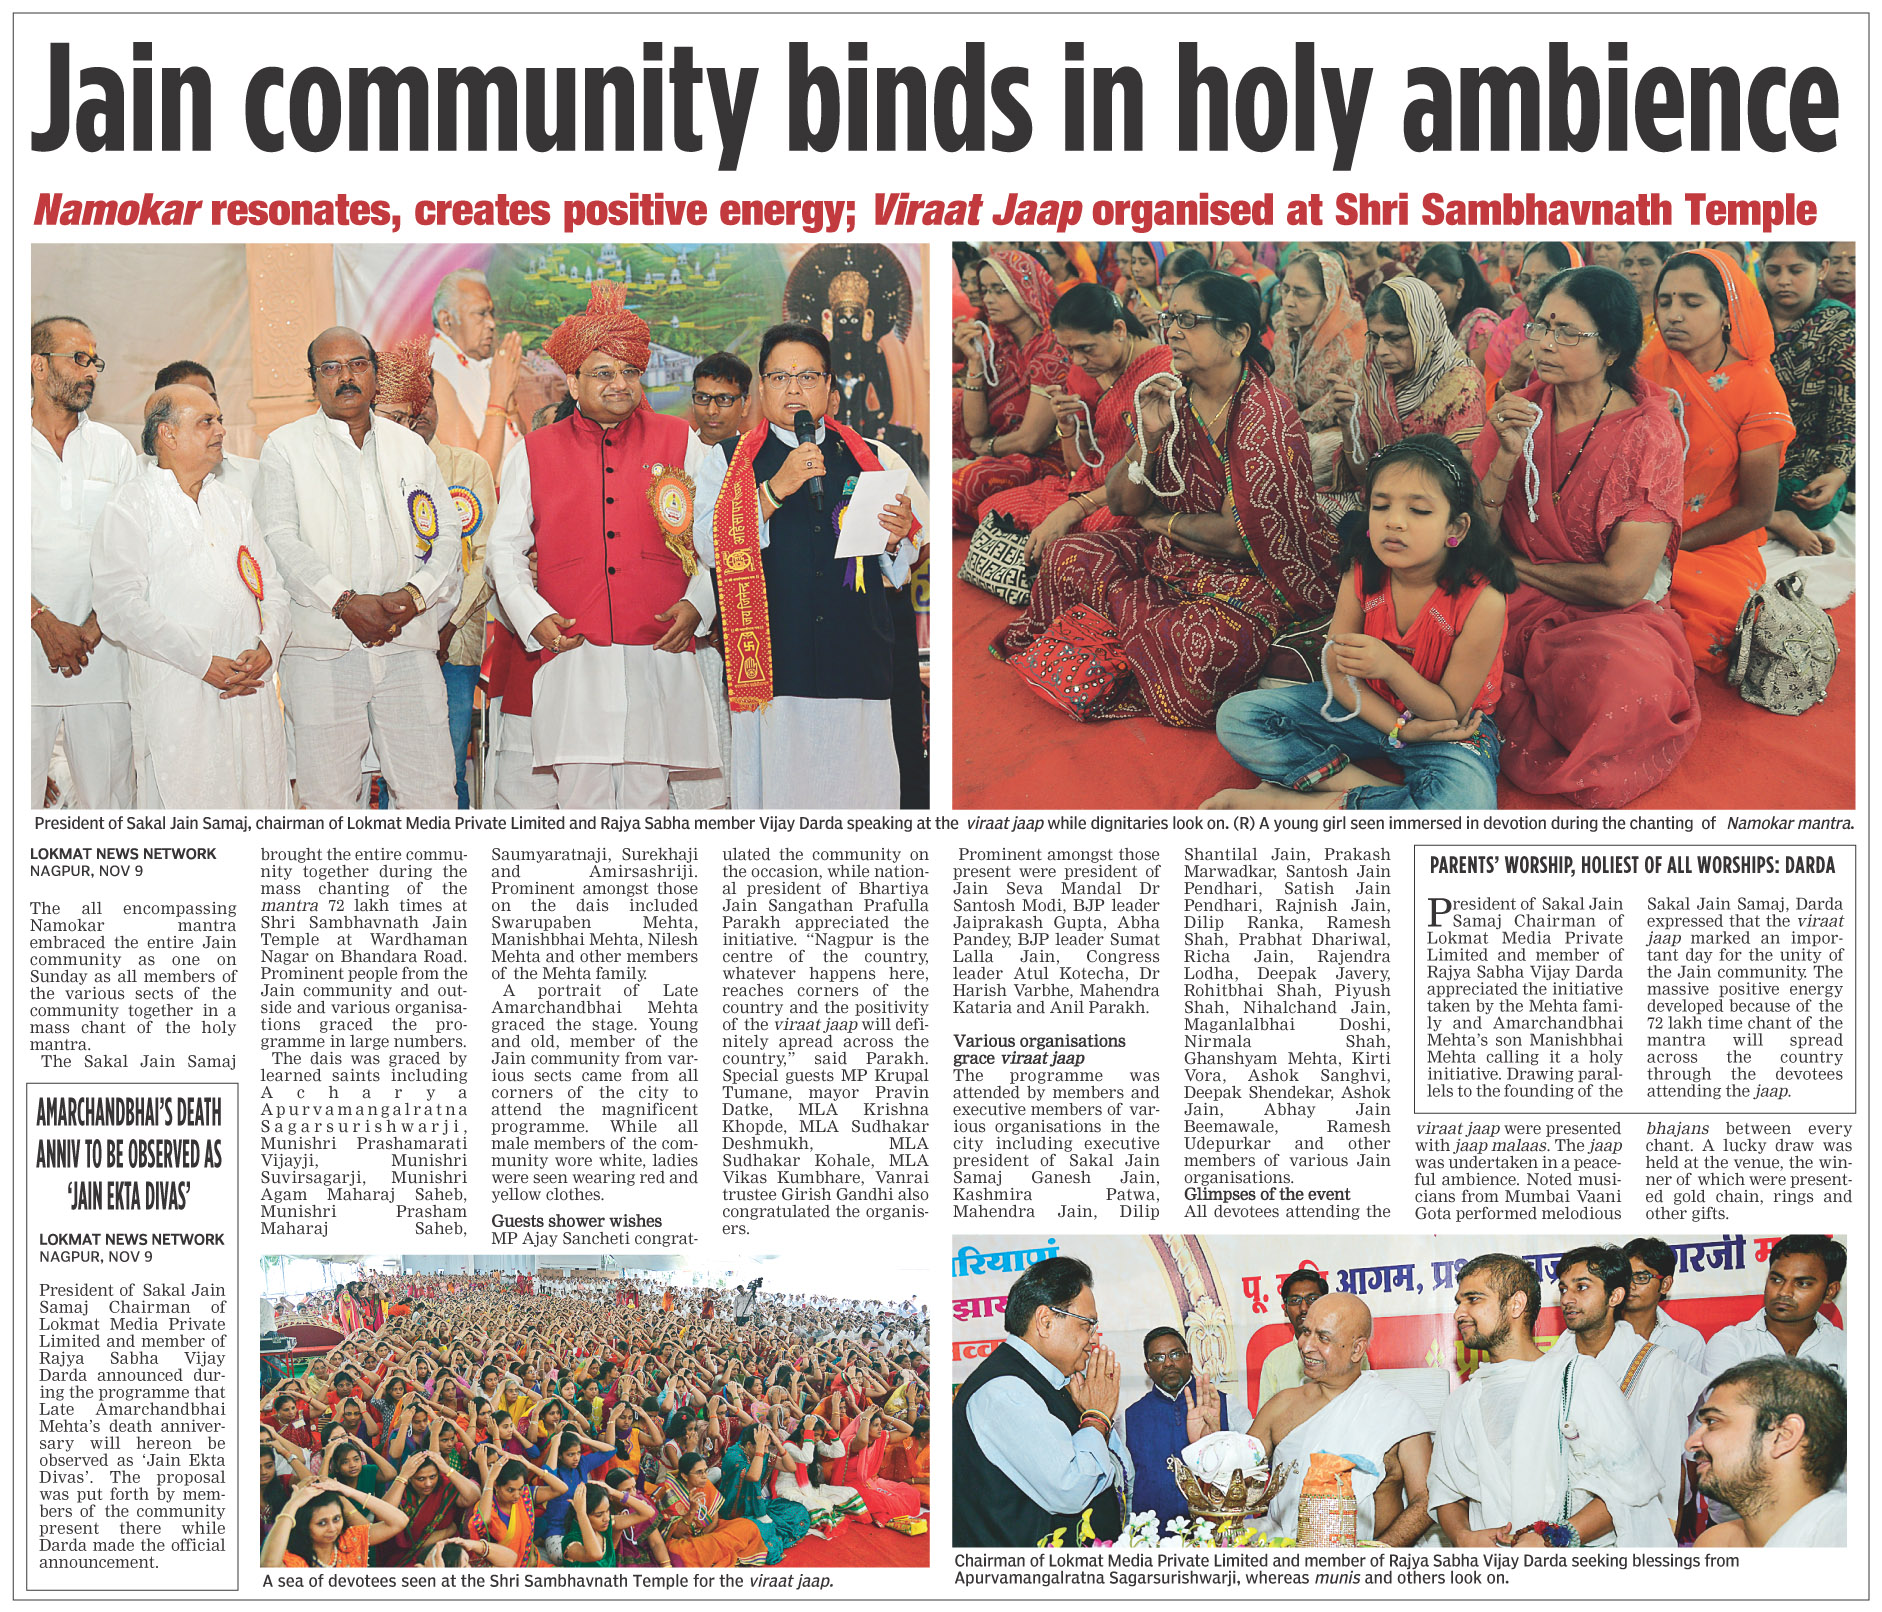 Jain community binds in holy ambience